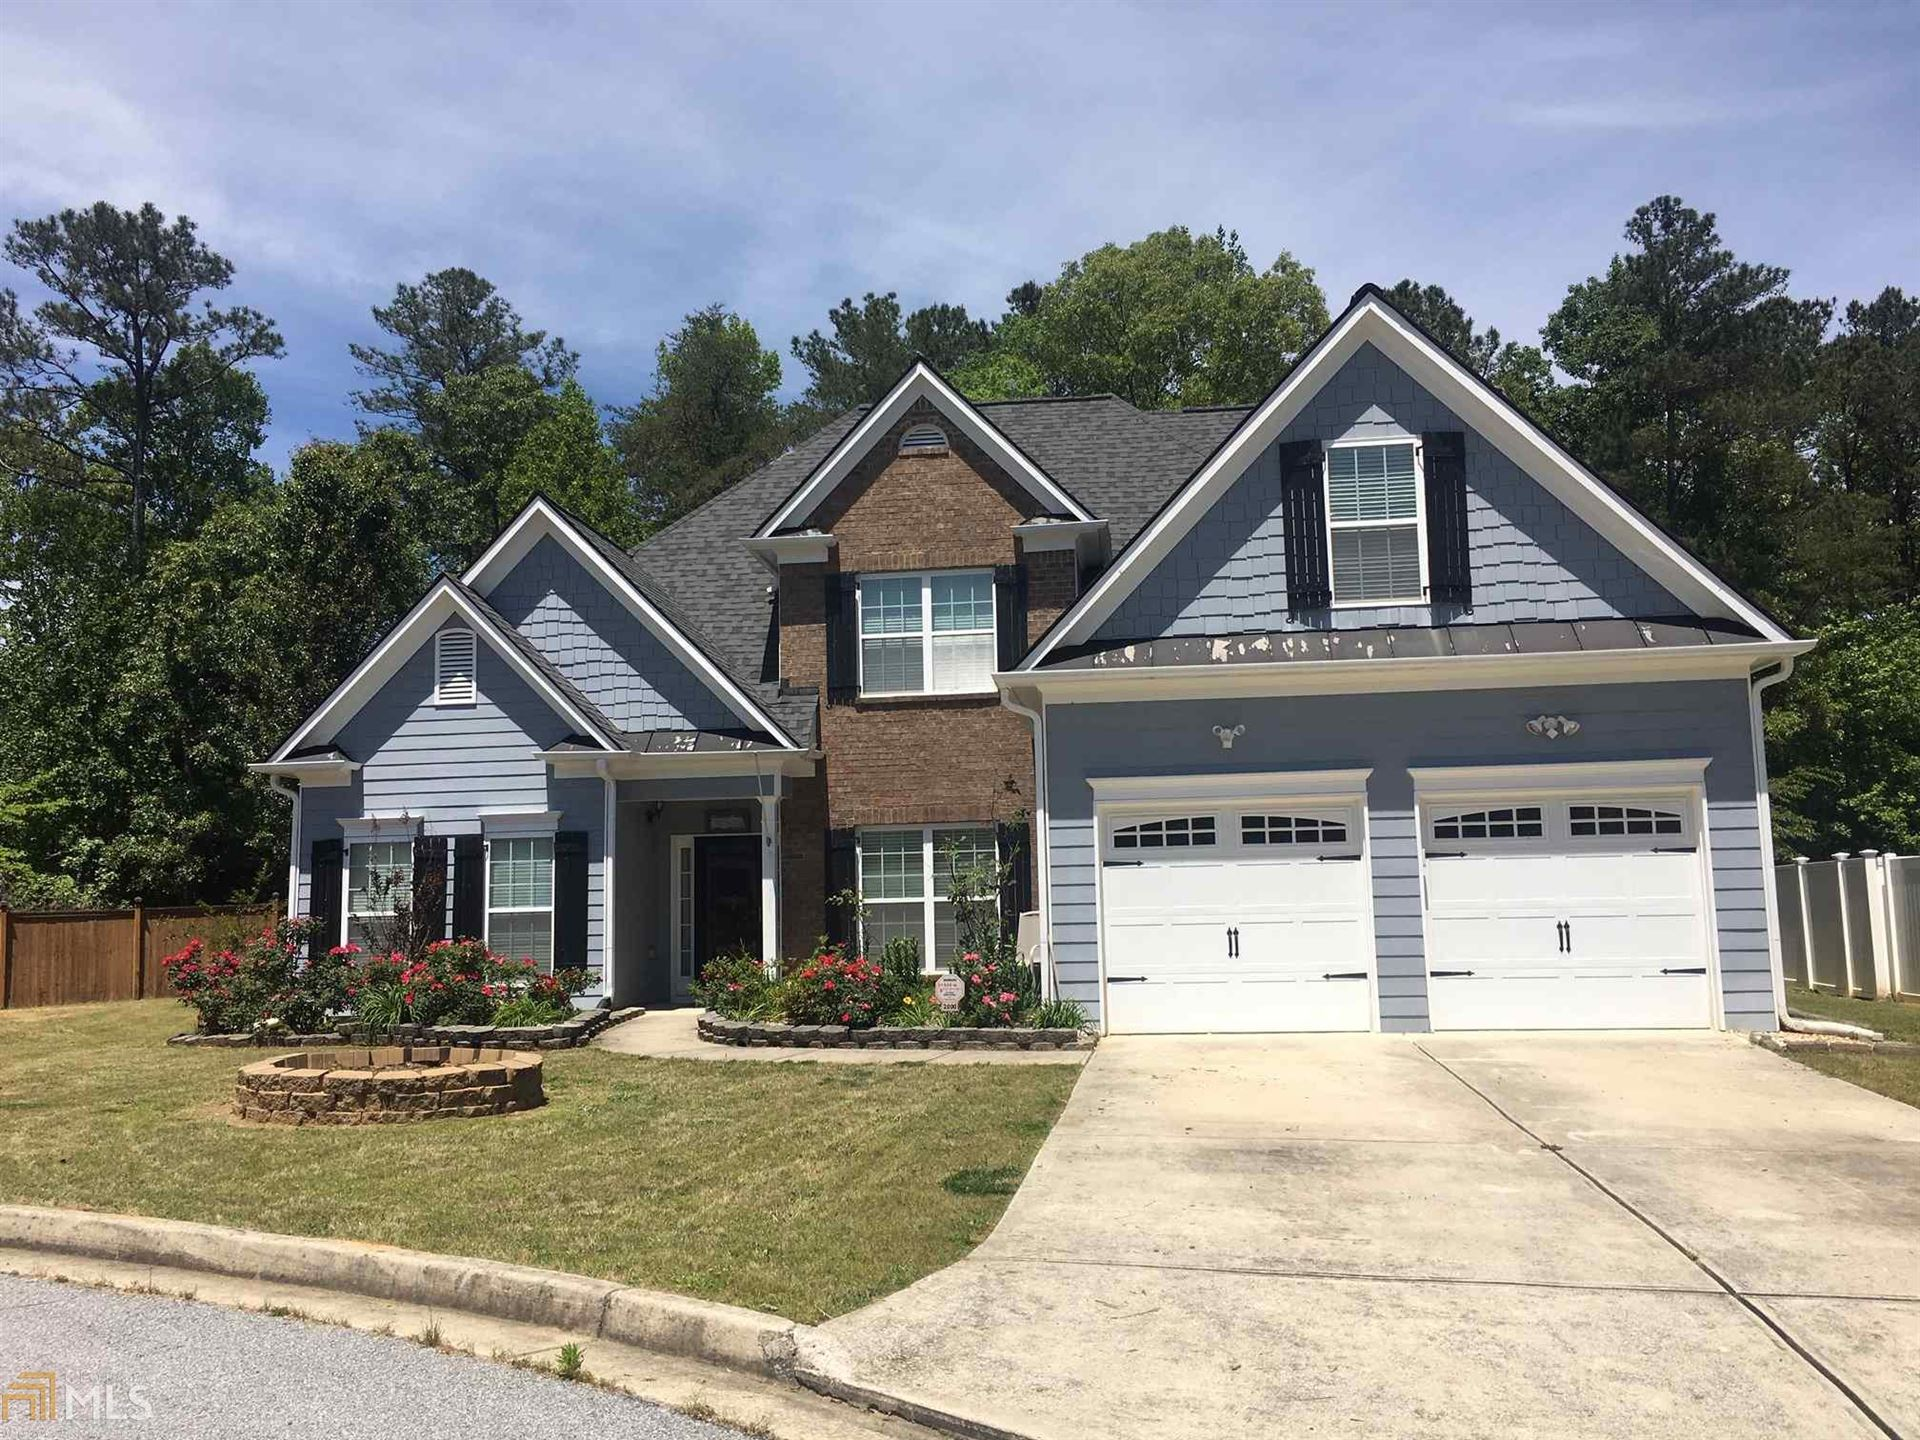 2000 Creek Pointe Way, Villa Rica, GA 30180 - MLS#: 8888569